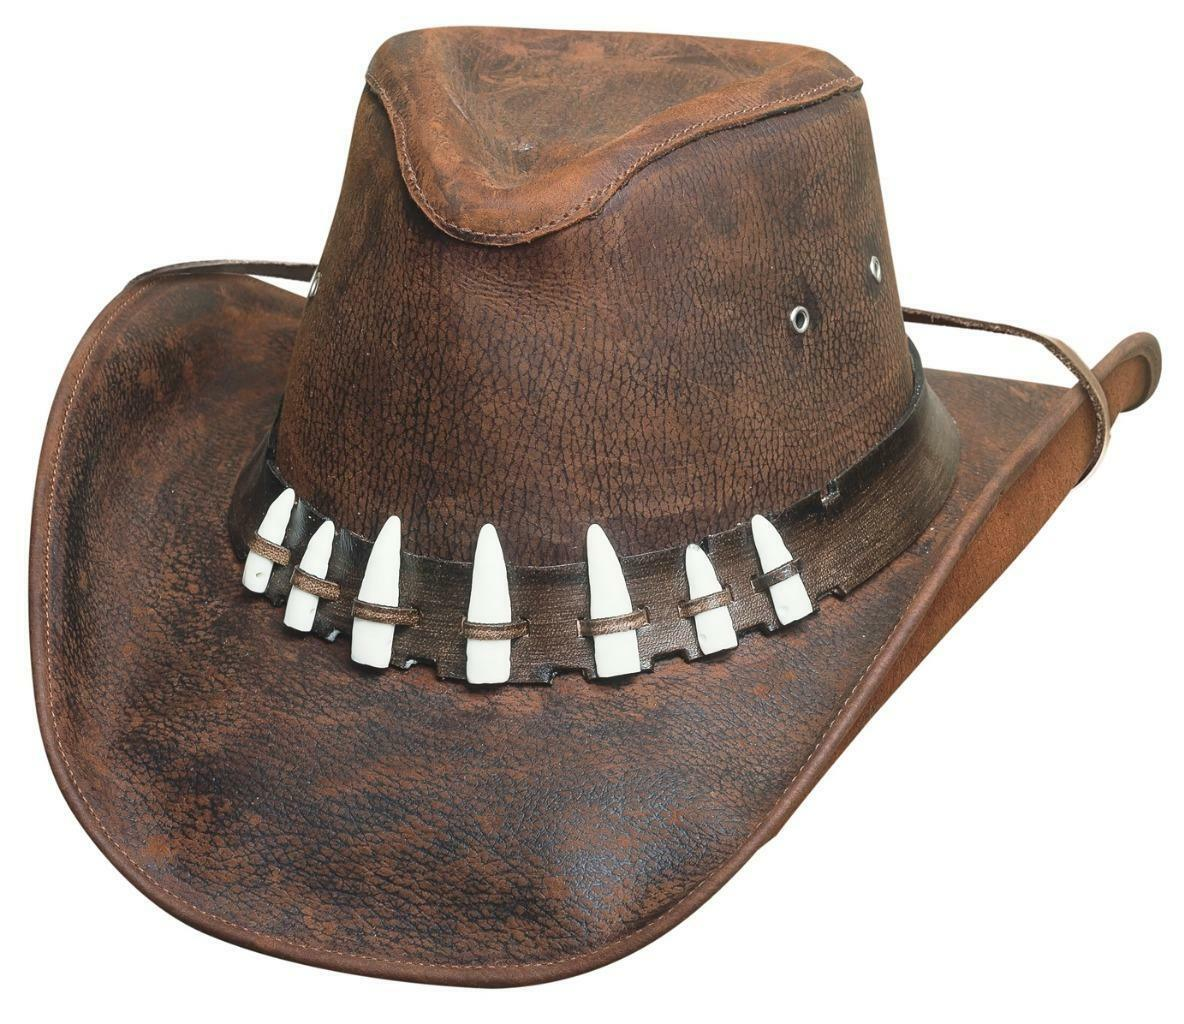 NEW Montecarlo Western Bullhide SPIFFY Top Grain LEATHER Western Montecarlo Cowboy Hat Chocolate 489030